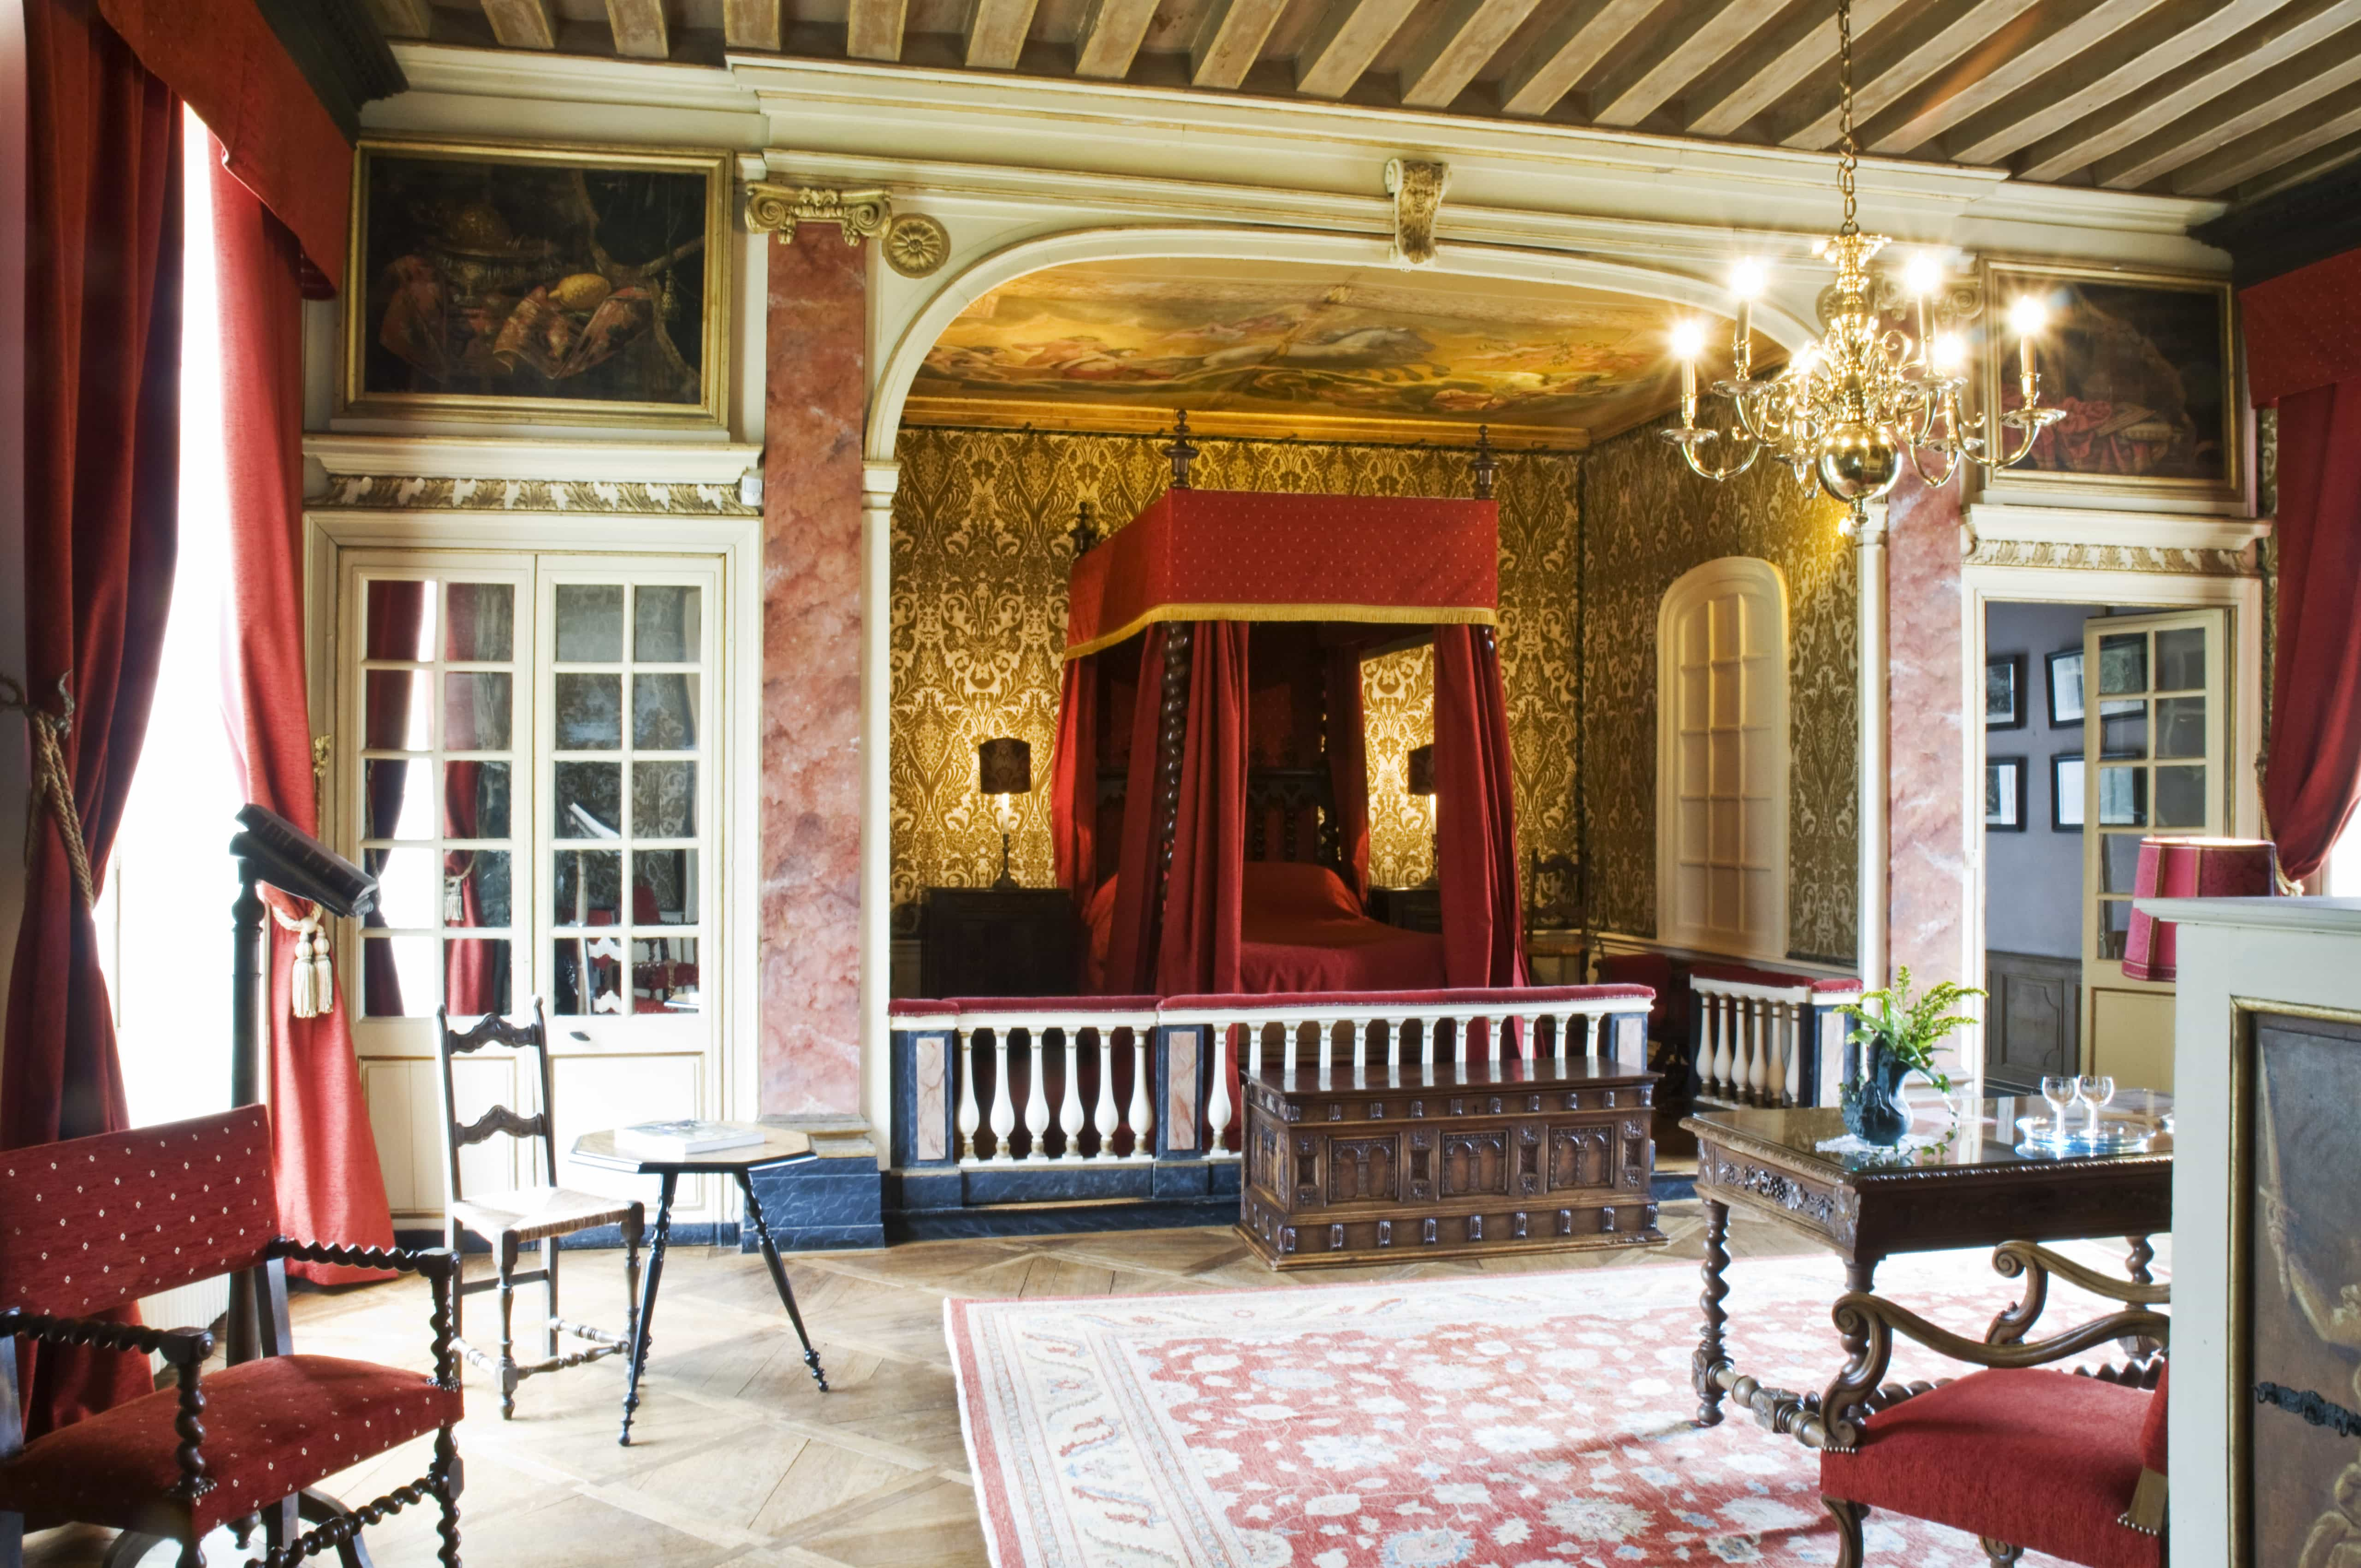 ch teau de bonnemare radepont chambres d 39 h tes au chateau normandie. Black Bedroom Furniture Sets. Home Design Ideas